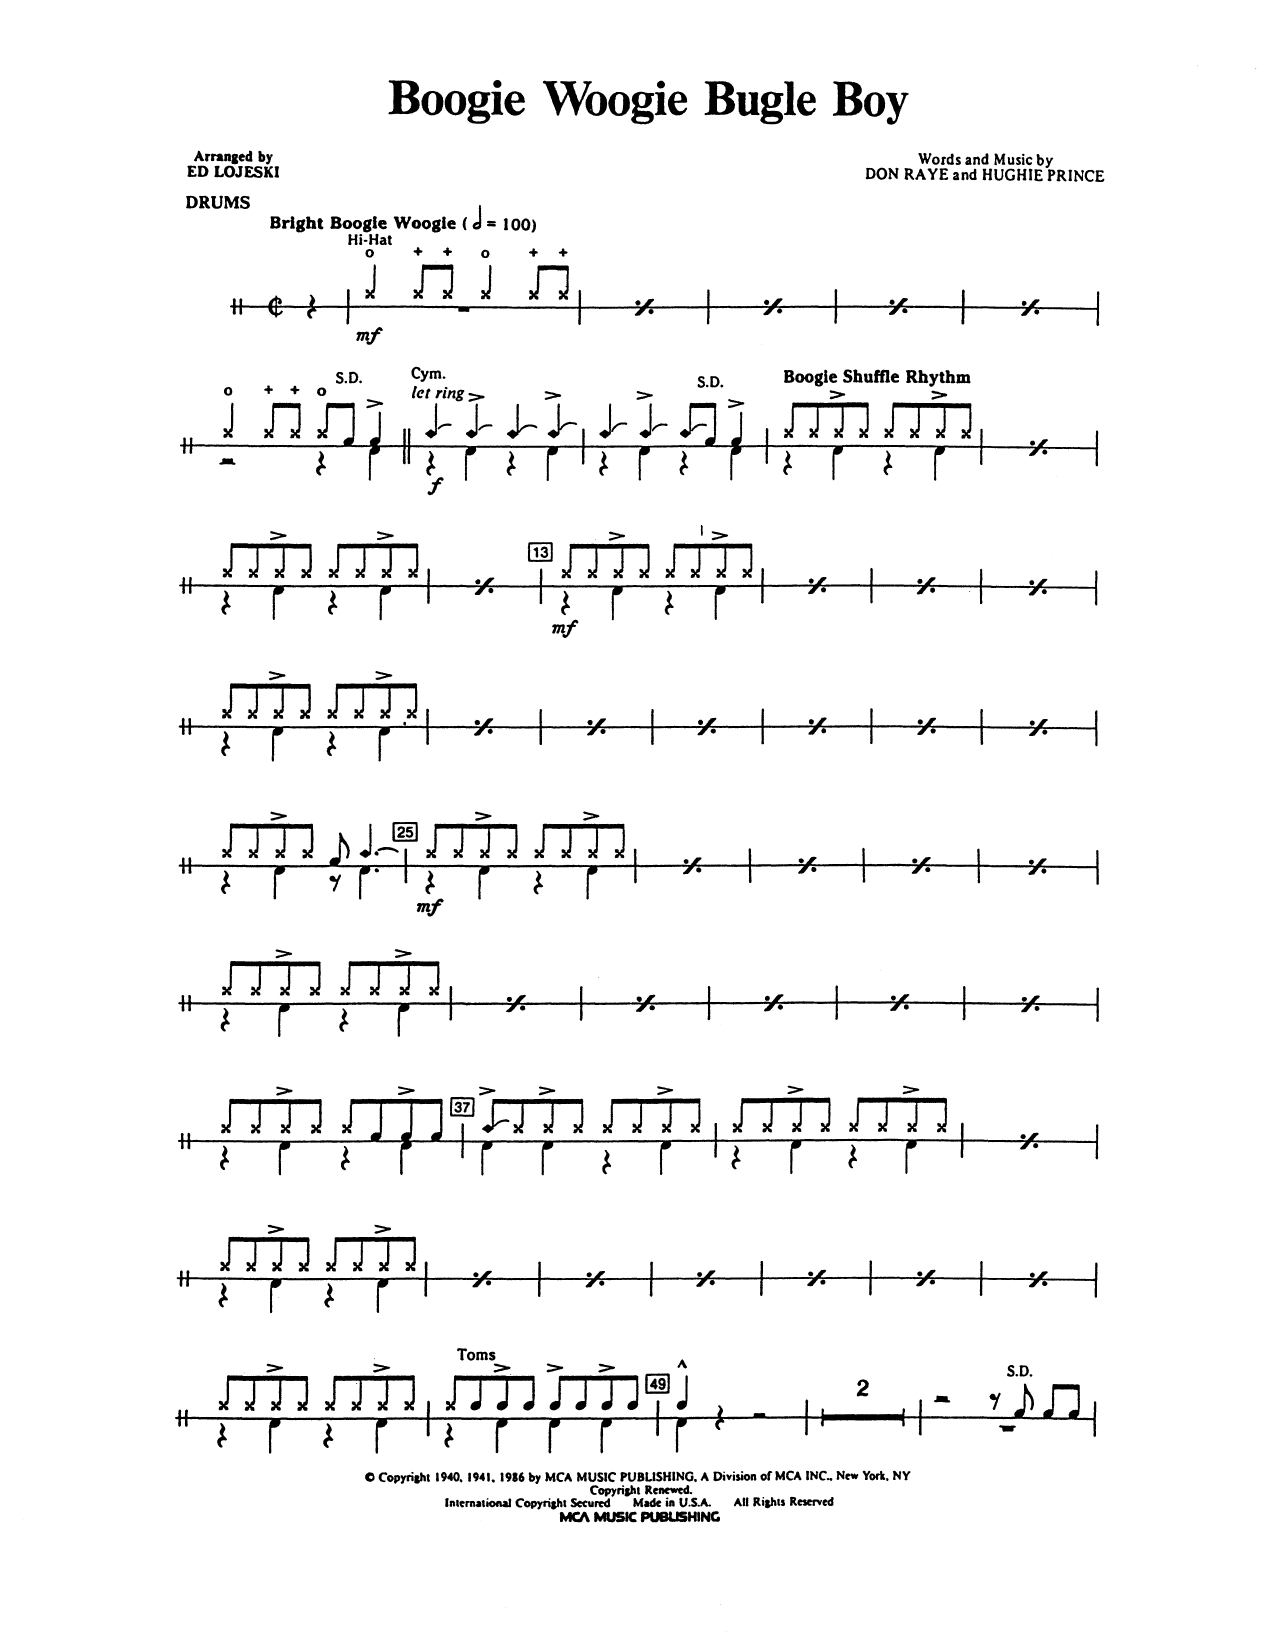 Boogie Woogie Bugle Boy - Drum Set Sheet Music